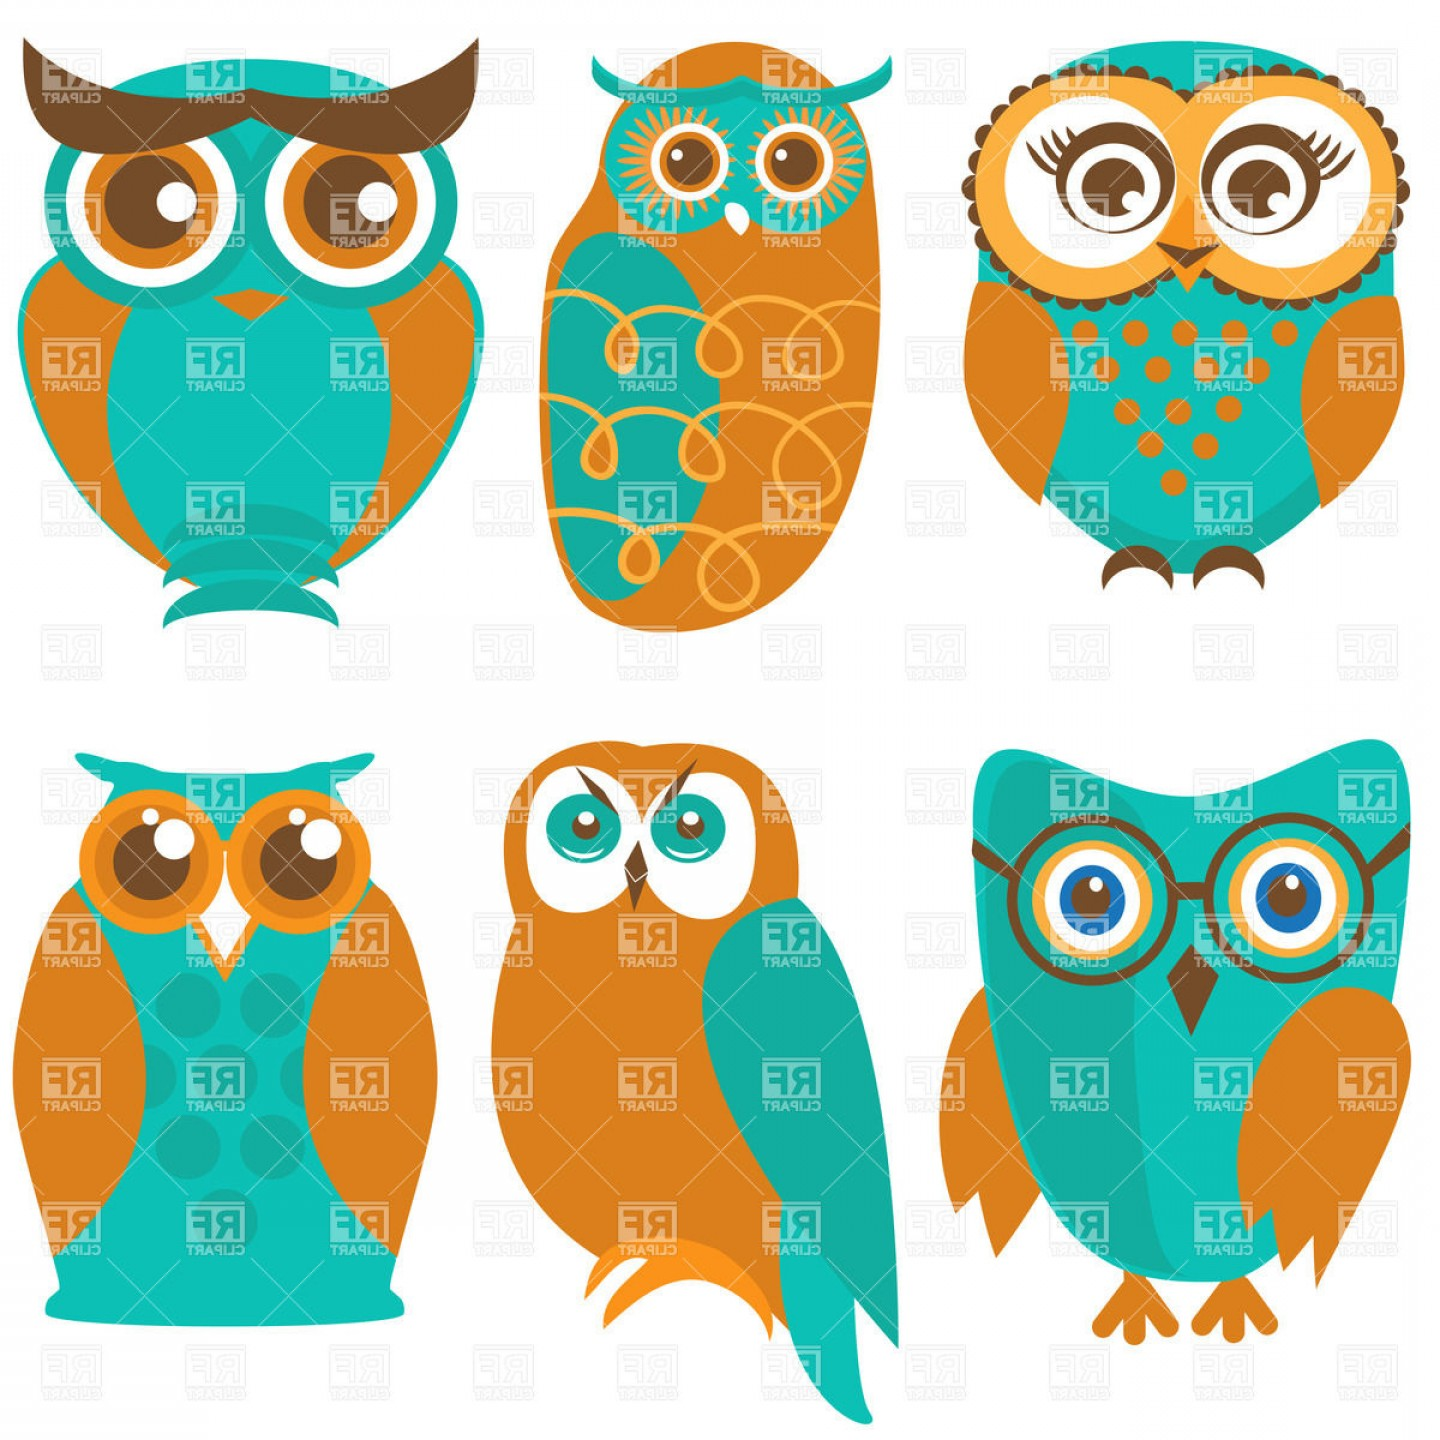 Vector Cartoon Free Clip Art: Revealing Pictures Of Owls To Download Ute Cartoon And Birds Royalty Free Vector Clip Art Image